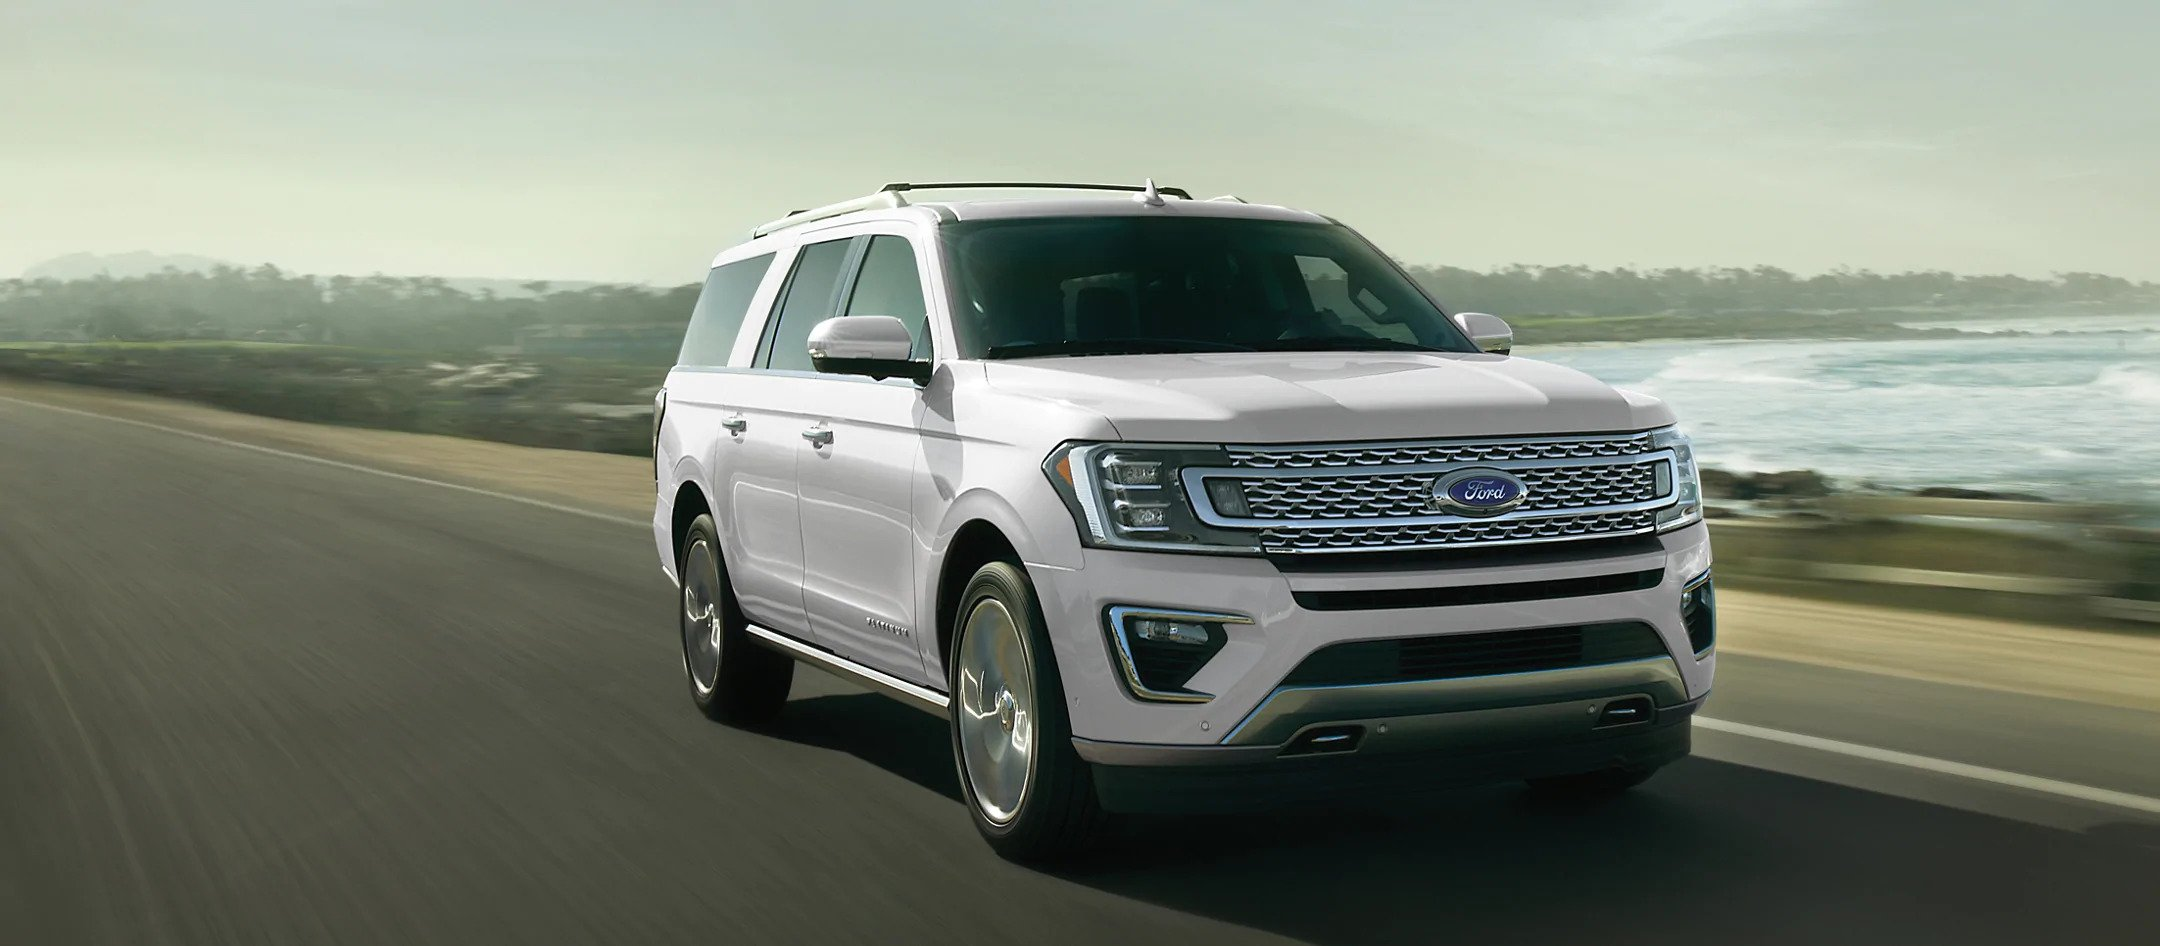 2021 Ford Expedition at Stuckey Ford